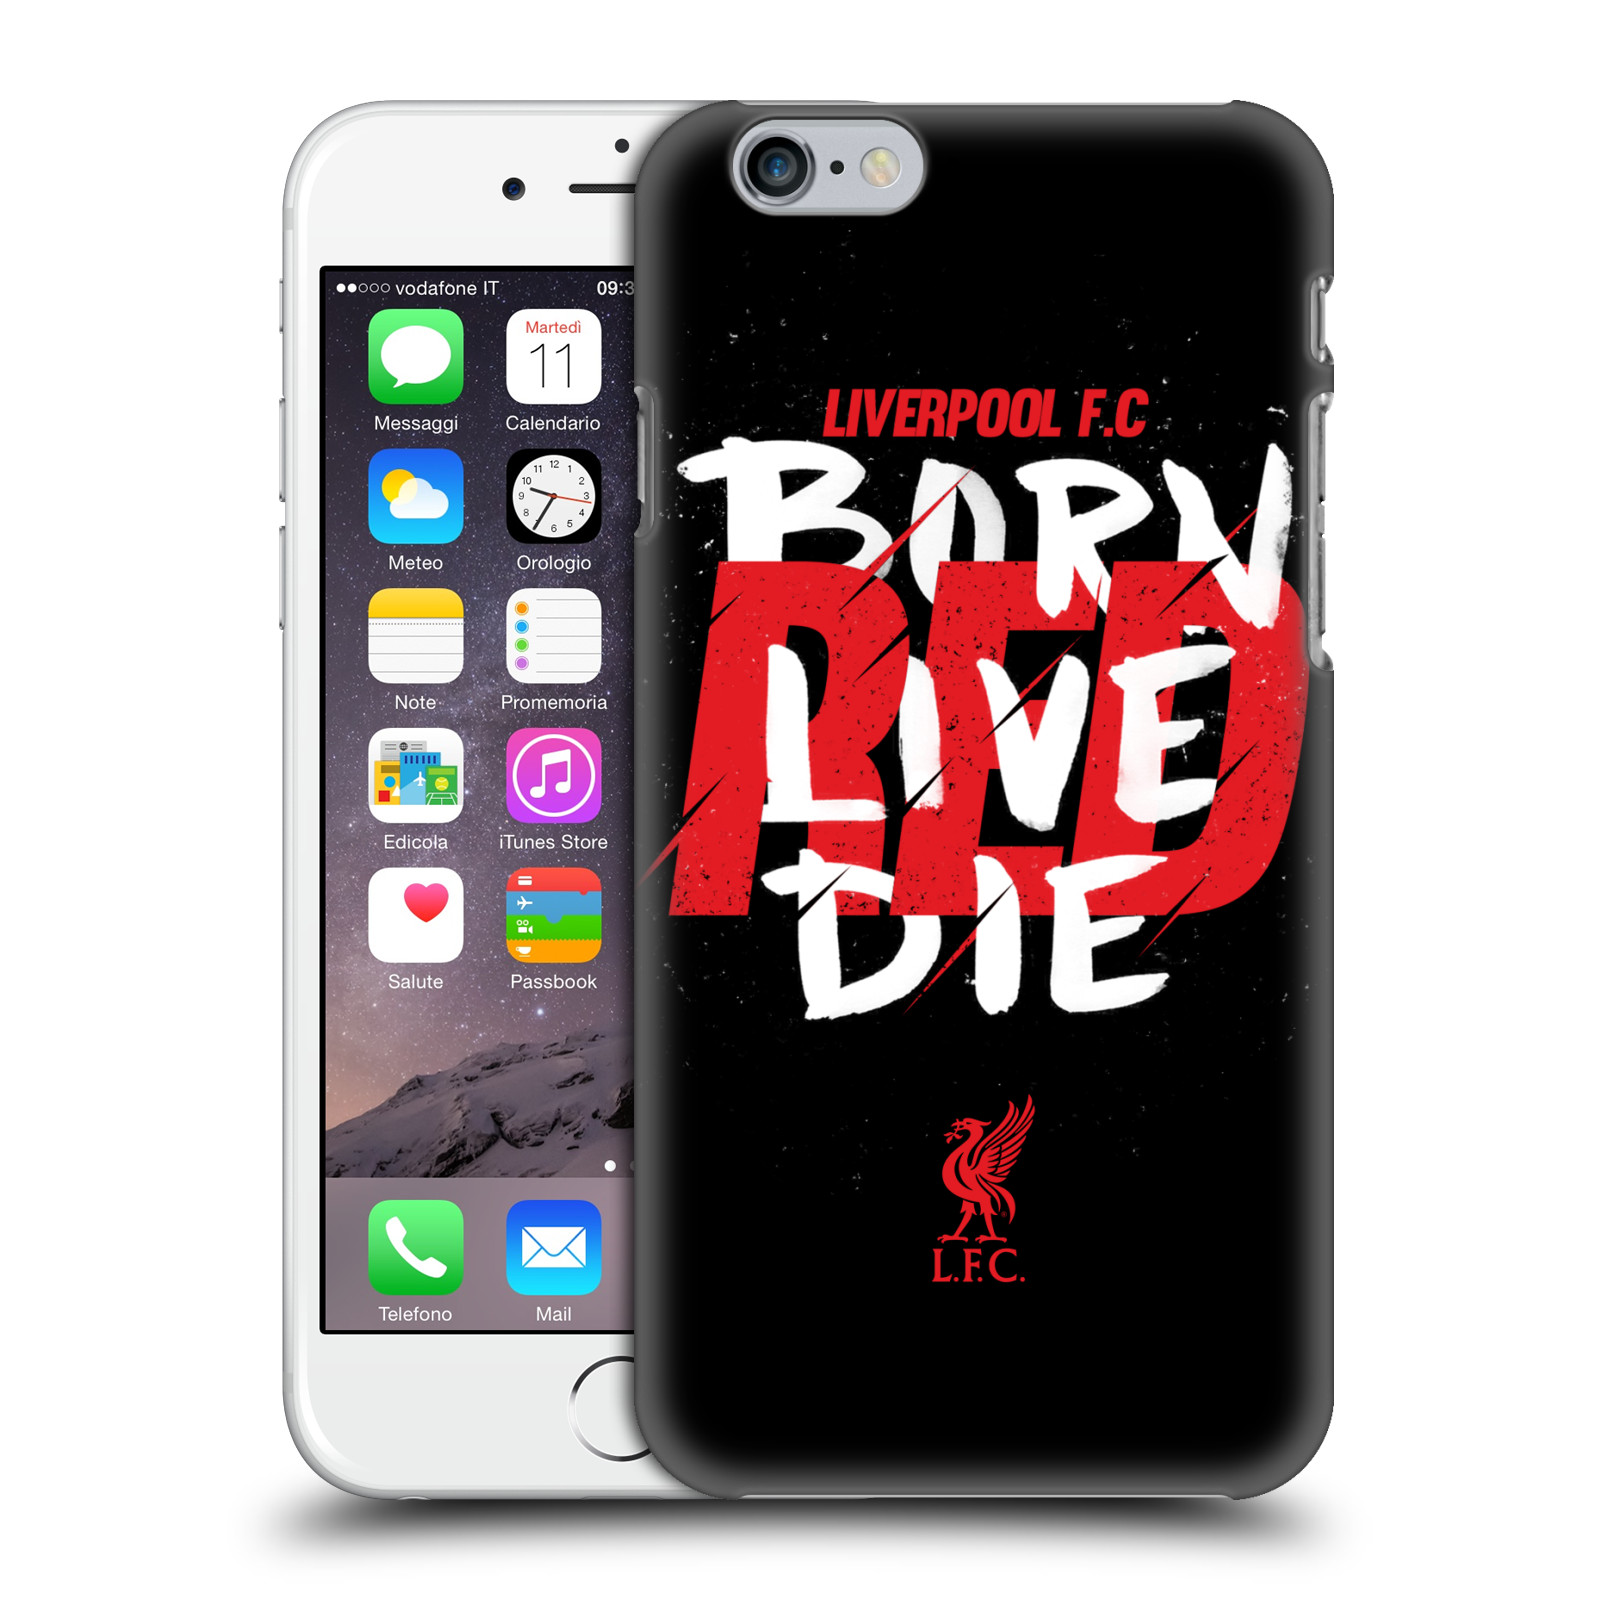 Liverpool FC LFC Redmen-Born Live Die Red